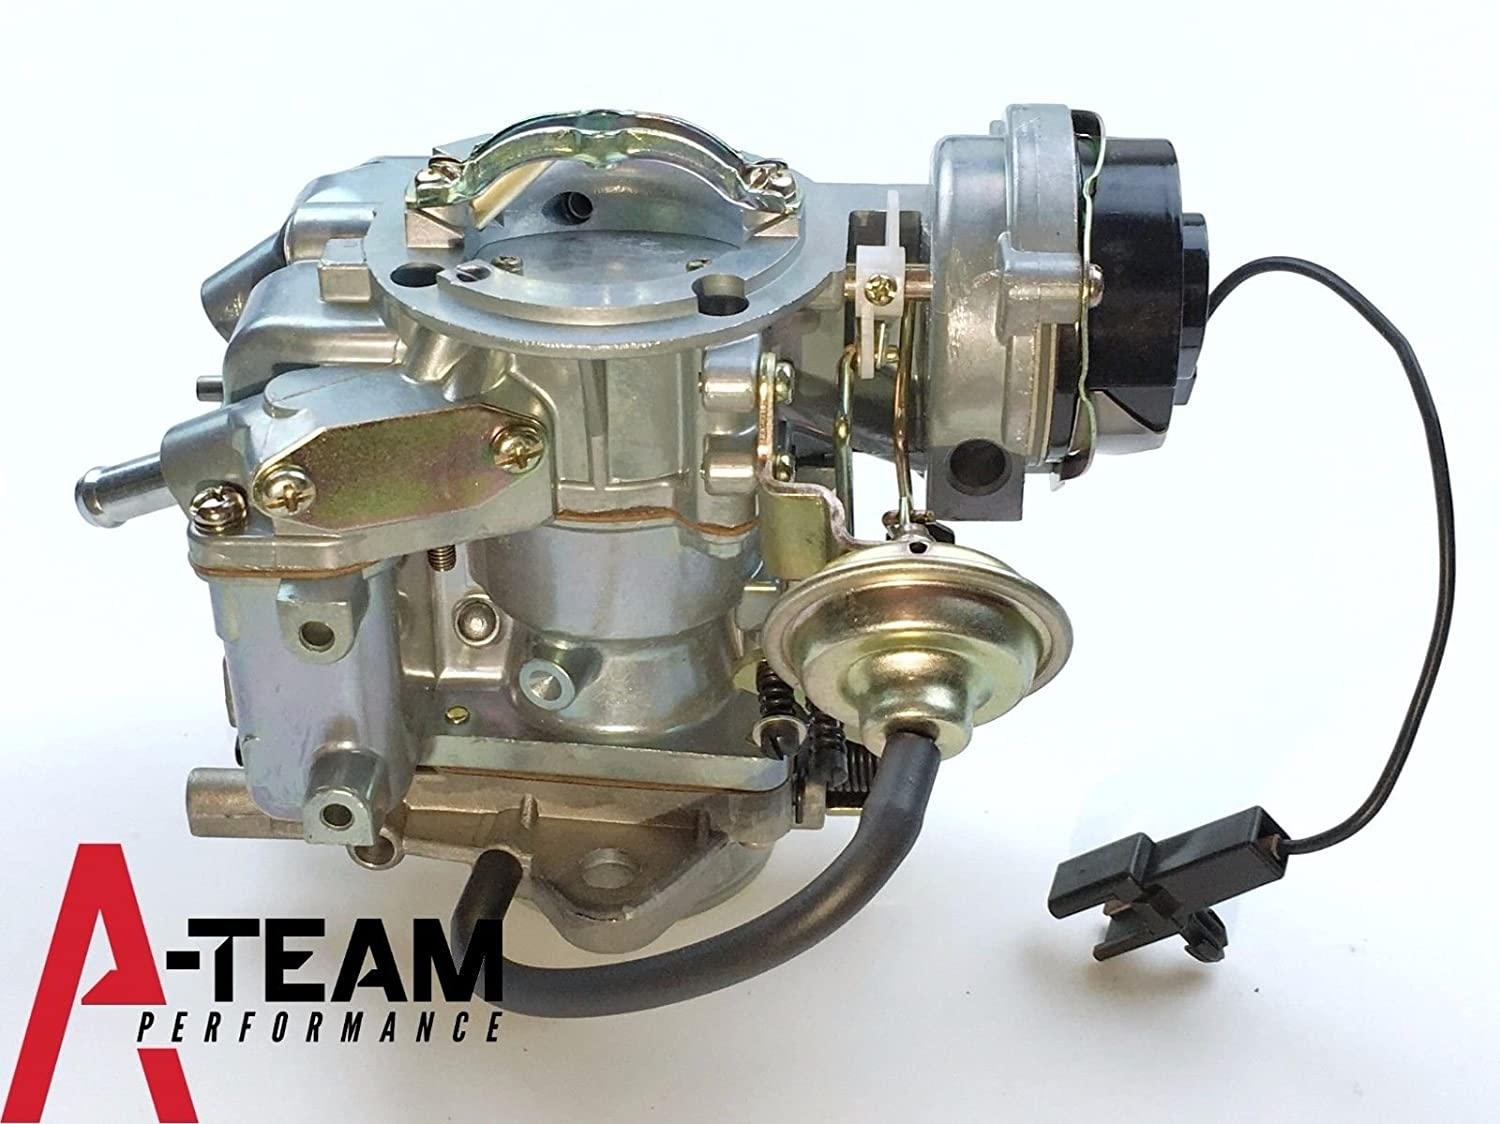 A-Team Performance CARBURETOR 162 CARTER COMPATIBLE WITH FORD 250 300 YFA E250 F250 1 BARREL ELECTRIC CHOKE FORD YFA